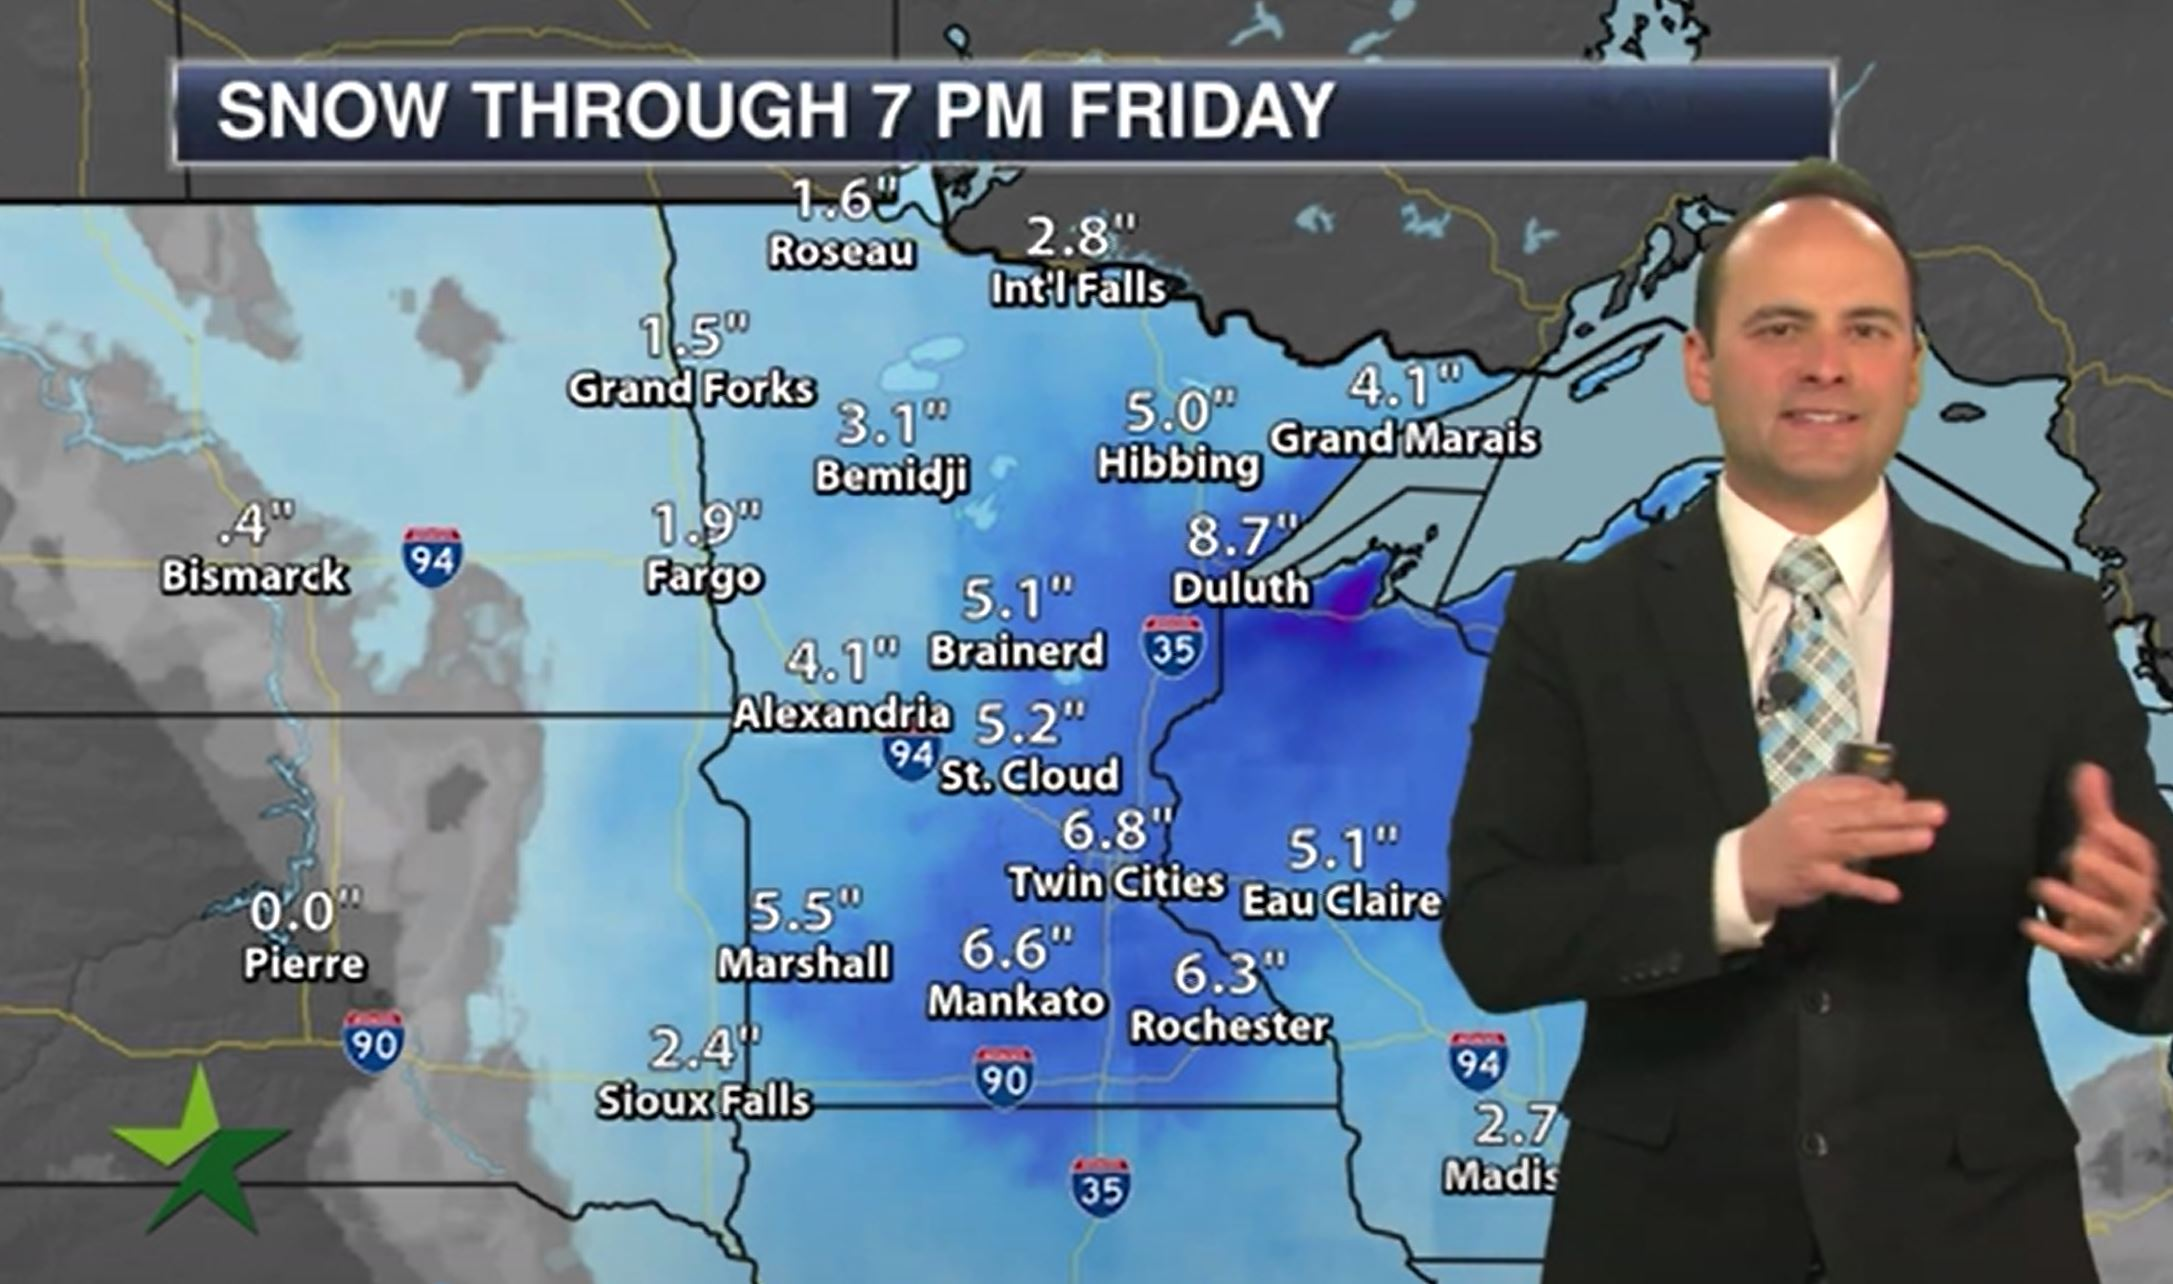 Evening forecast: Low of 29; freezing rain possible late ahead of winter storm